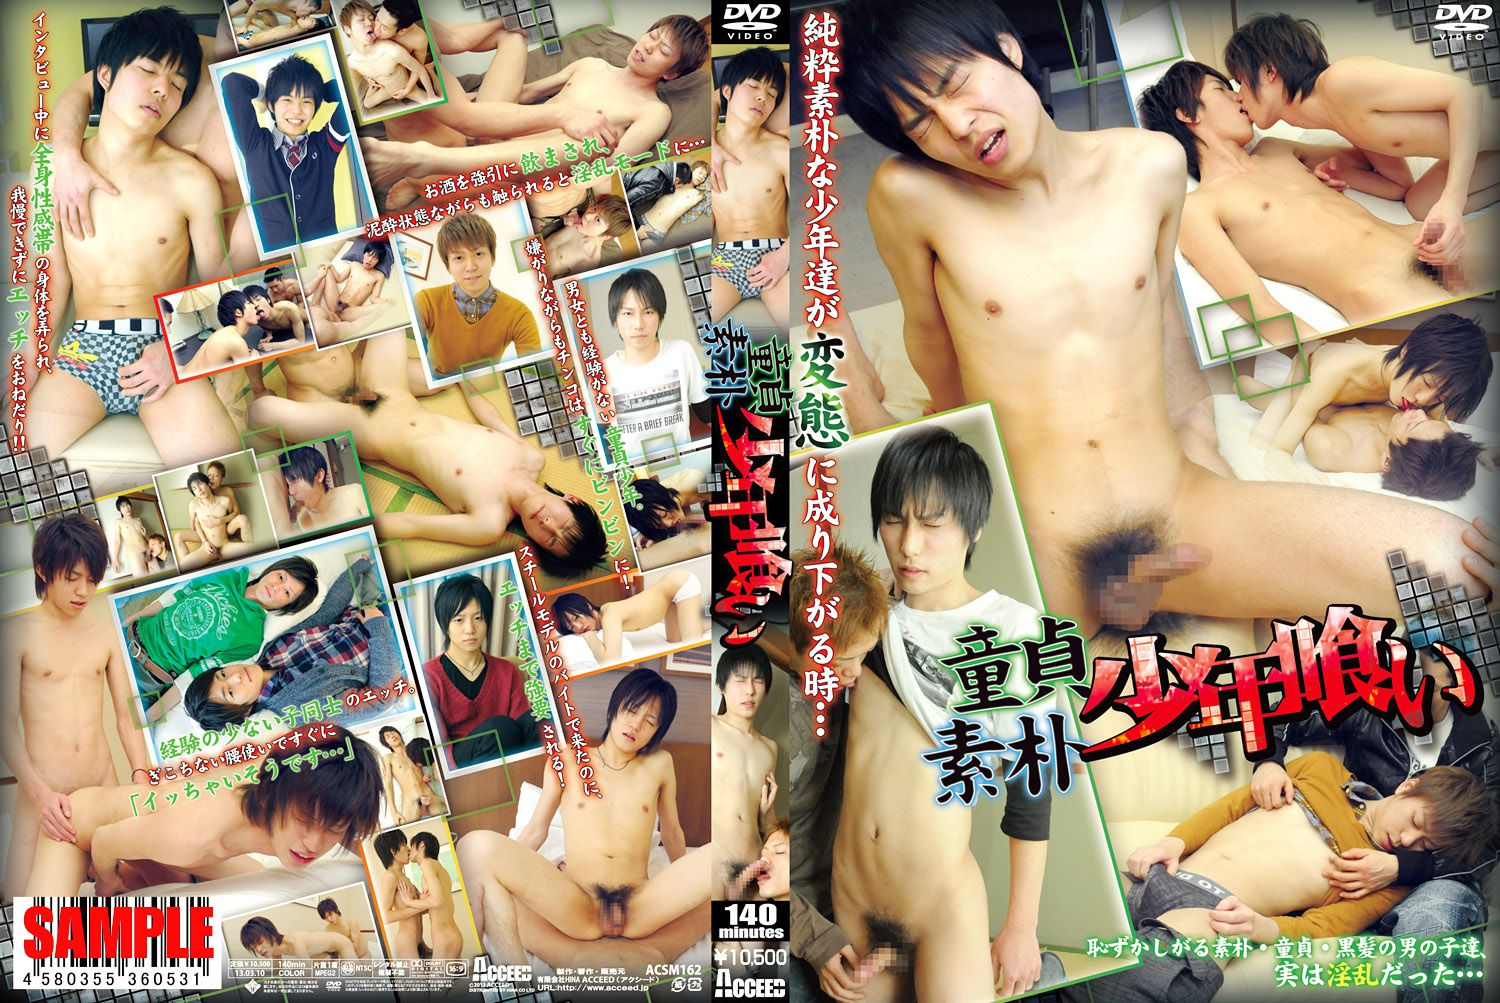 Acceed – 童貞素朴少年喰い (Eating Virgin Pure Boys)